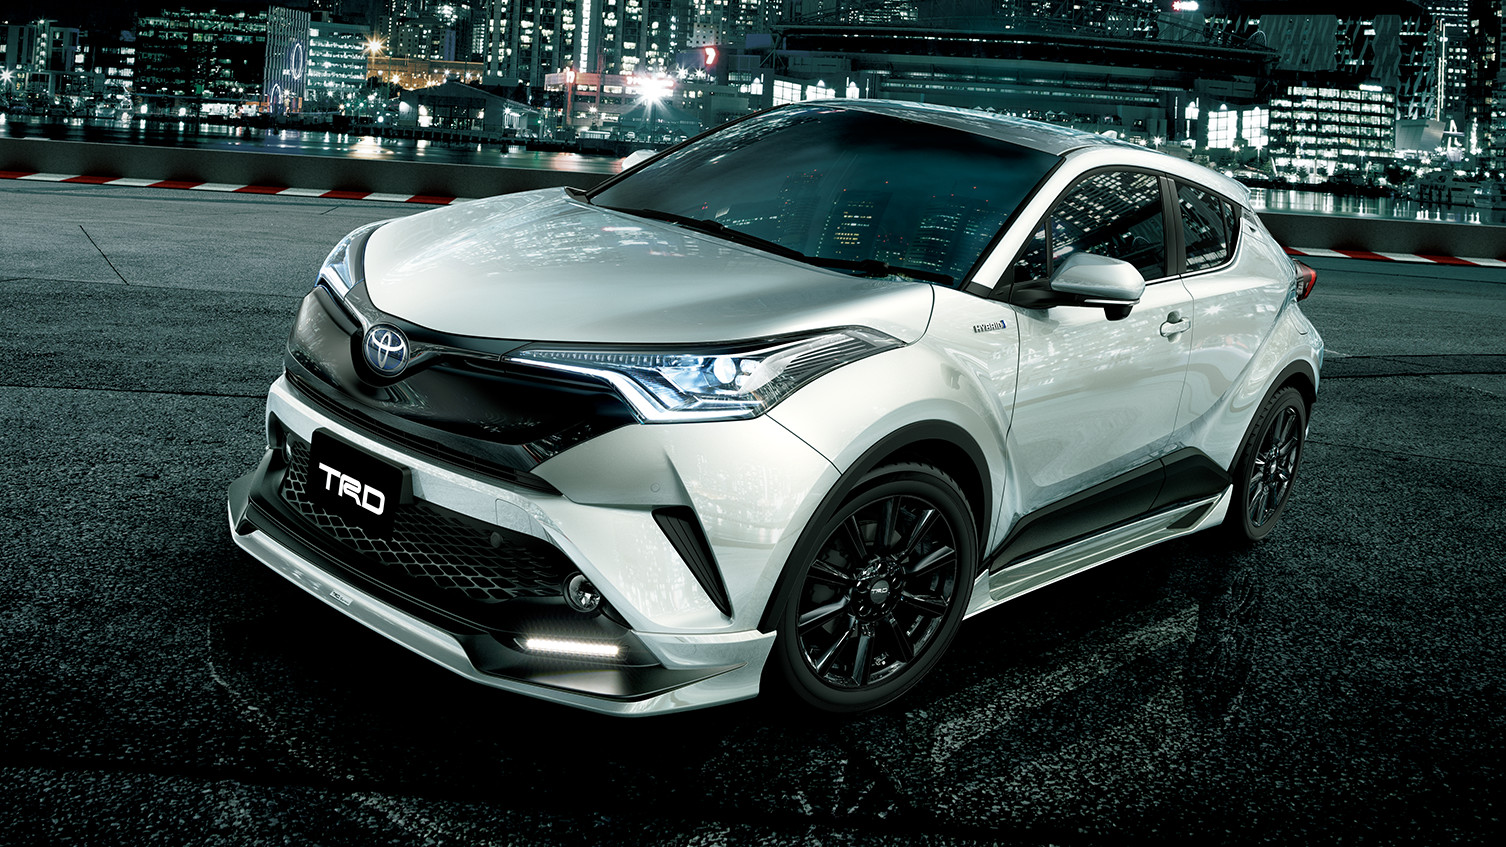 carlineup_c-hr_customize_trd_aggressivestyle_large_01